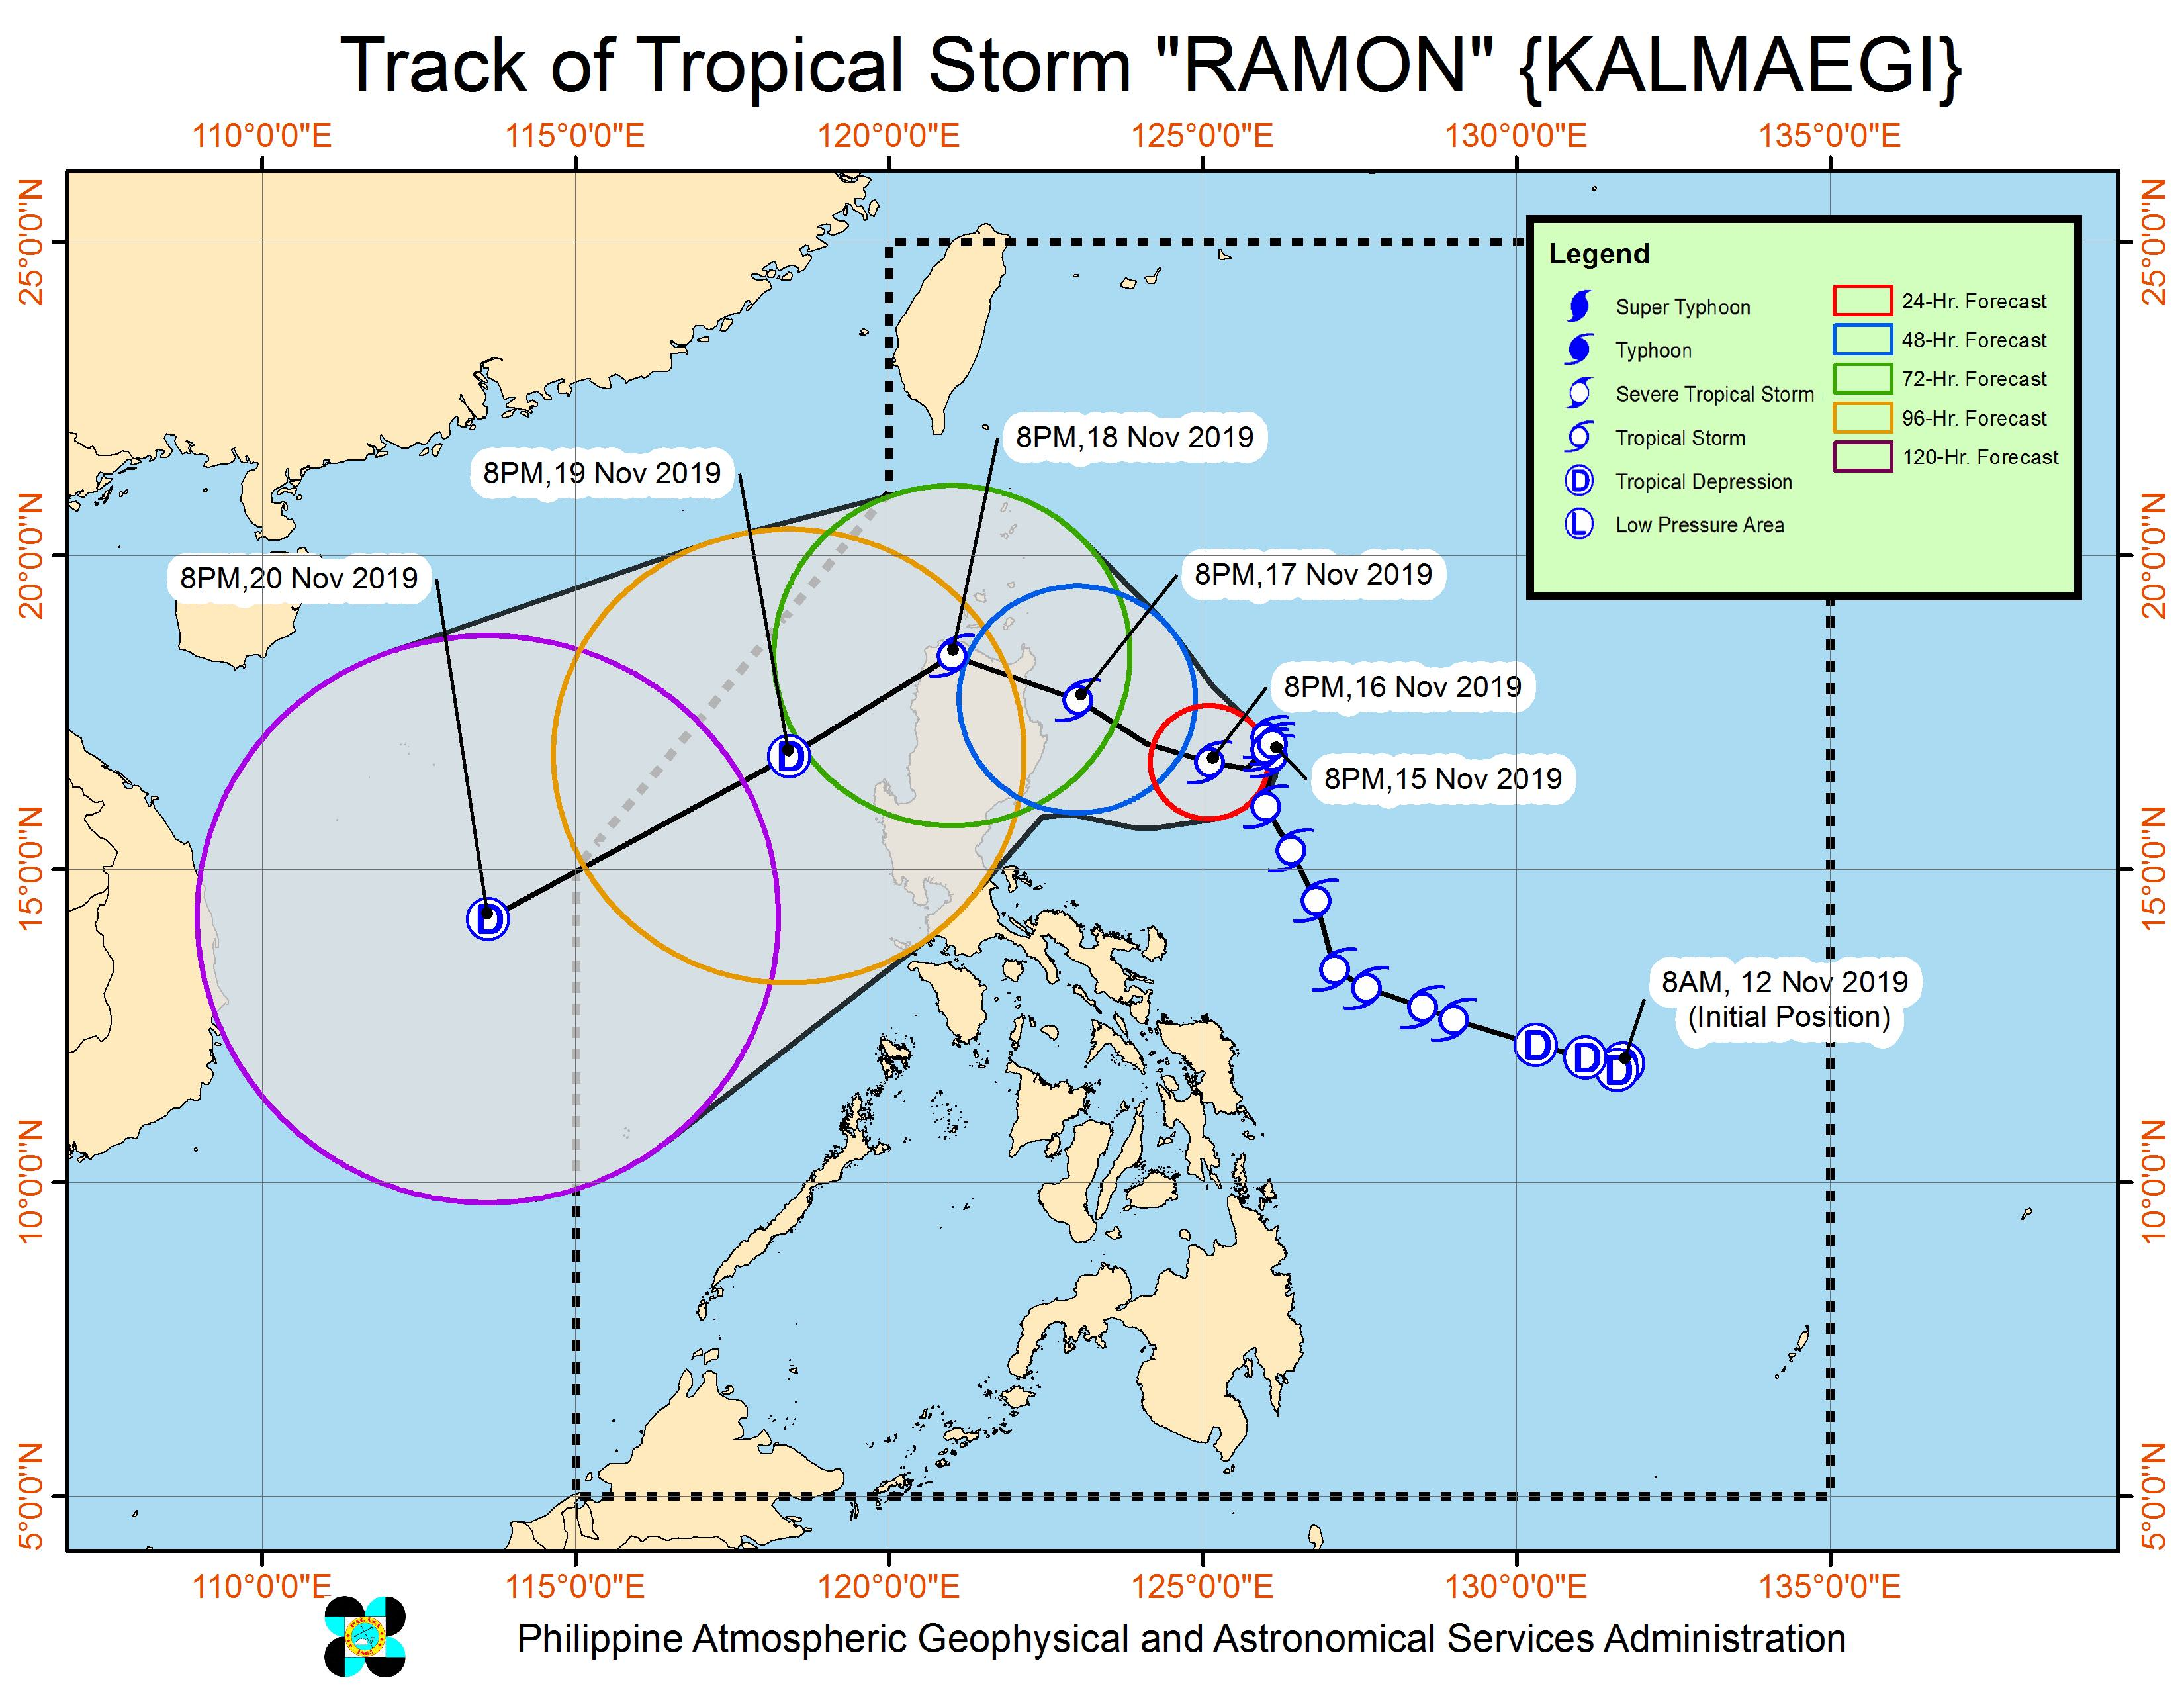 Forecast track of Tropical Storm Ramon (Kalmaegi) as of November 15, 2019, 11 pm. Image from PAGASA